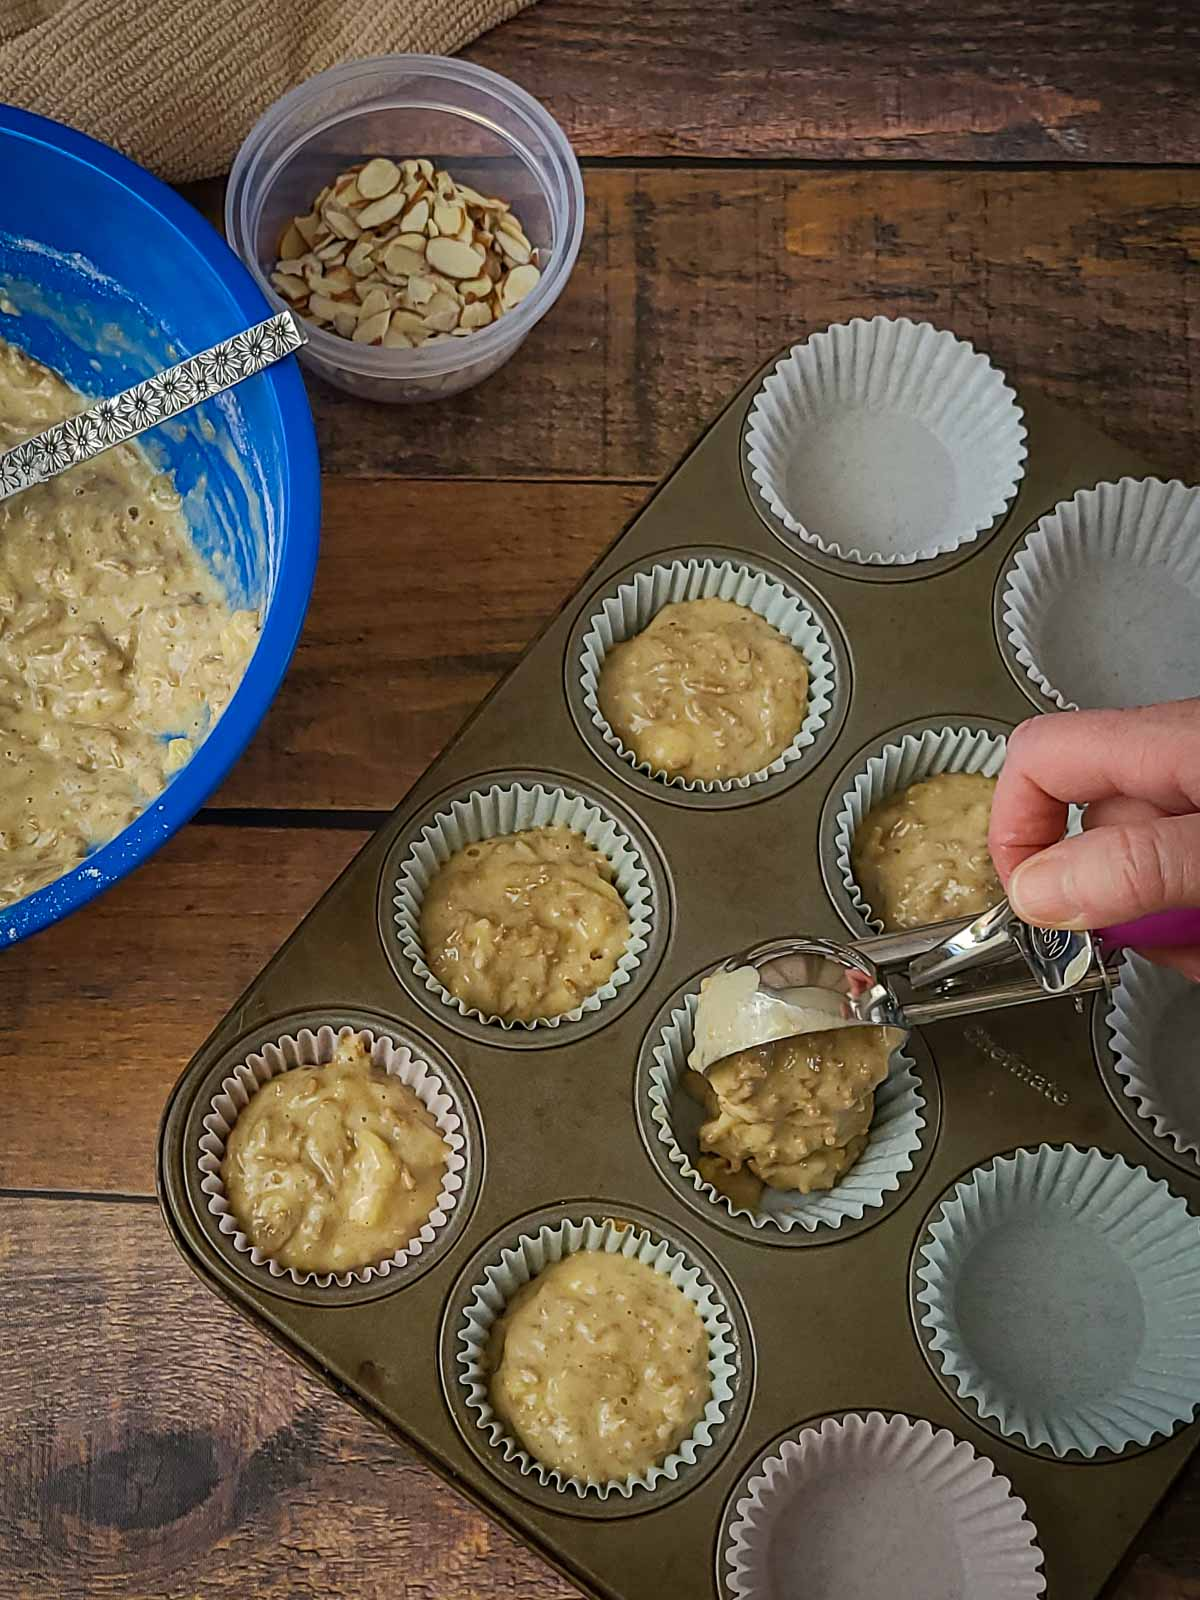 muffin batter being put in a muffin pan